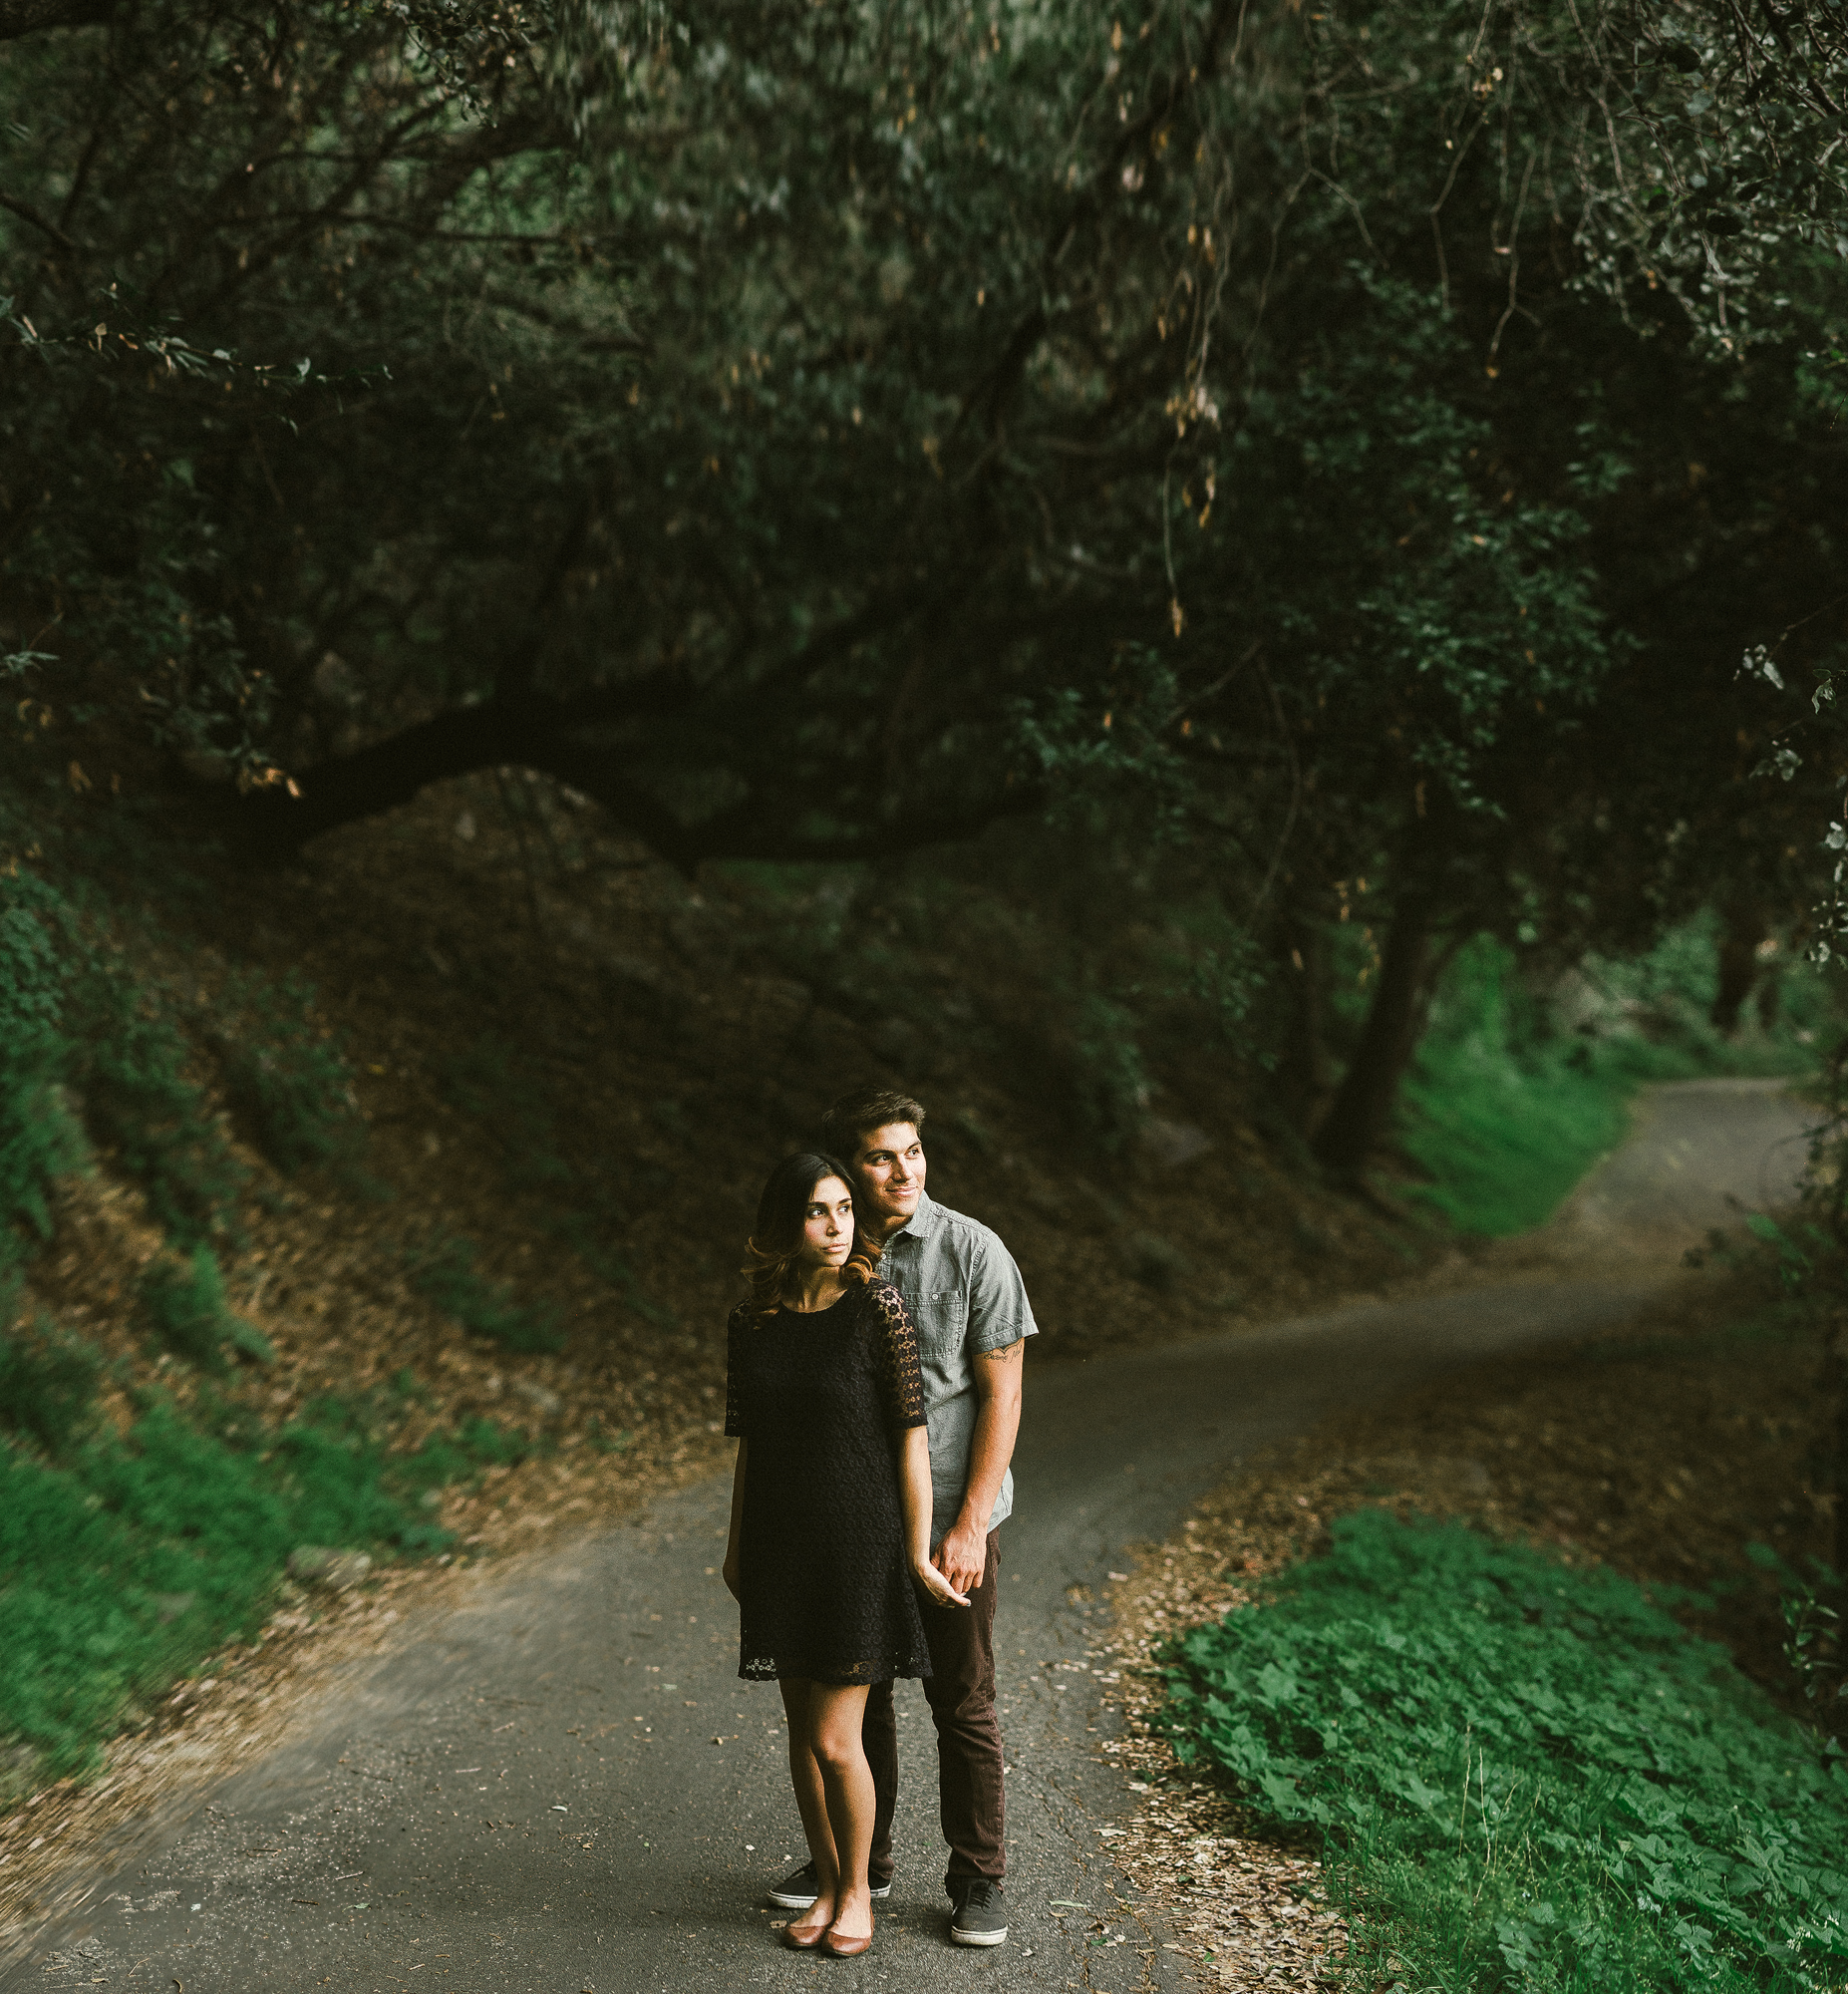 Isaiah & Taylor Photography - Los Angeles - Destination Wedding Photographers - Angeles National Forest Engagement-14.jpg